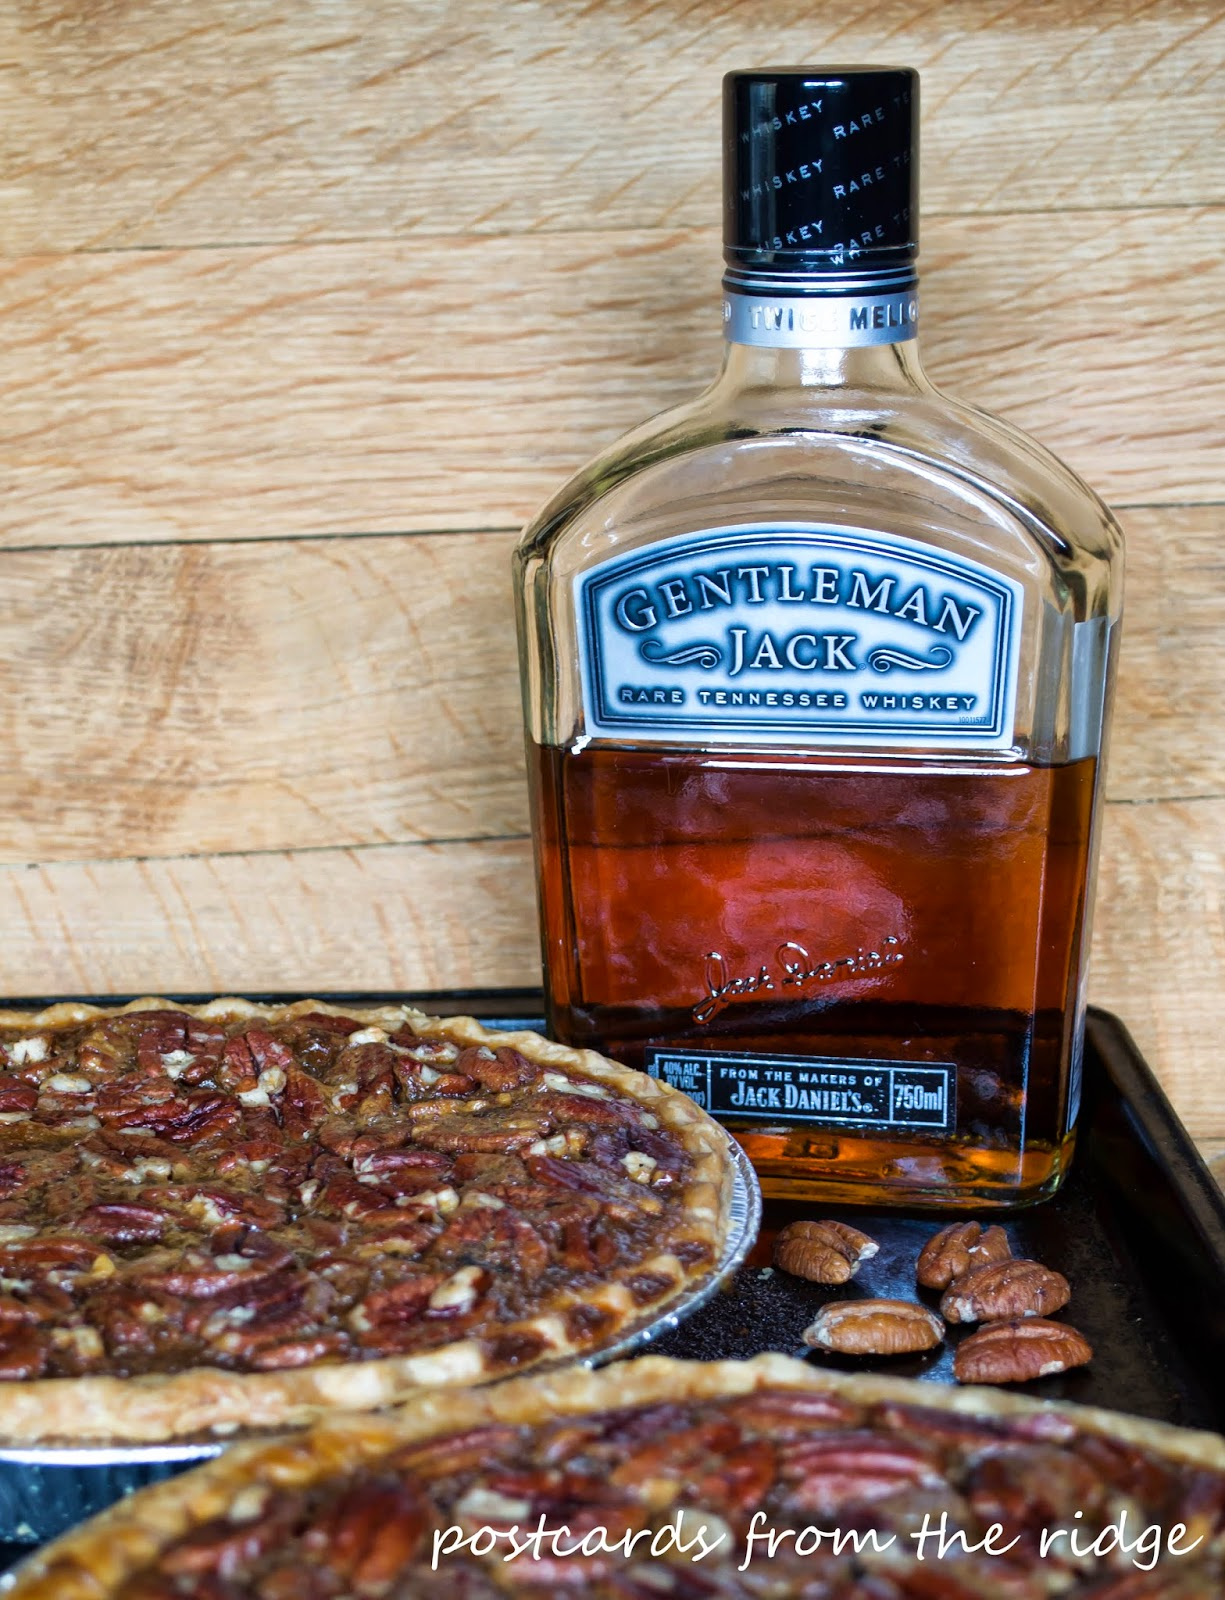 Best pecan pie recipe ever. Made with Georgia pecans and Jack Daniels Tennessee whiskey. To die for.